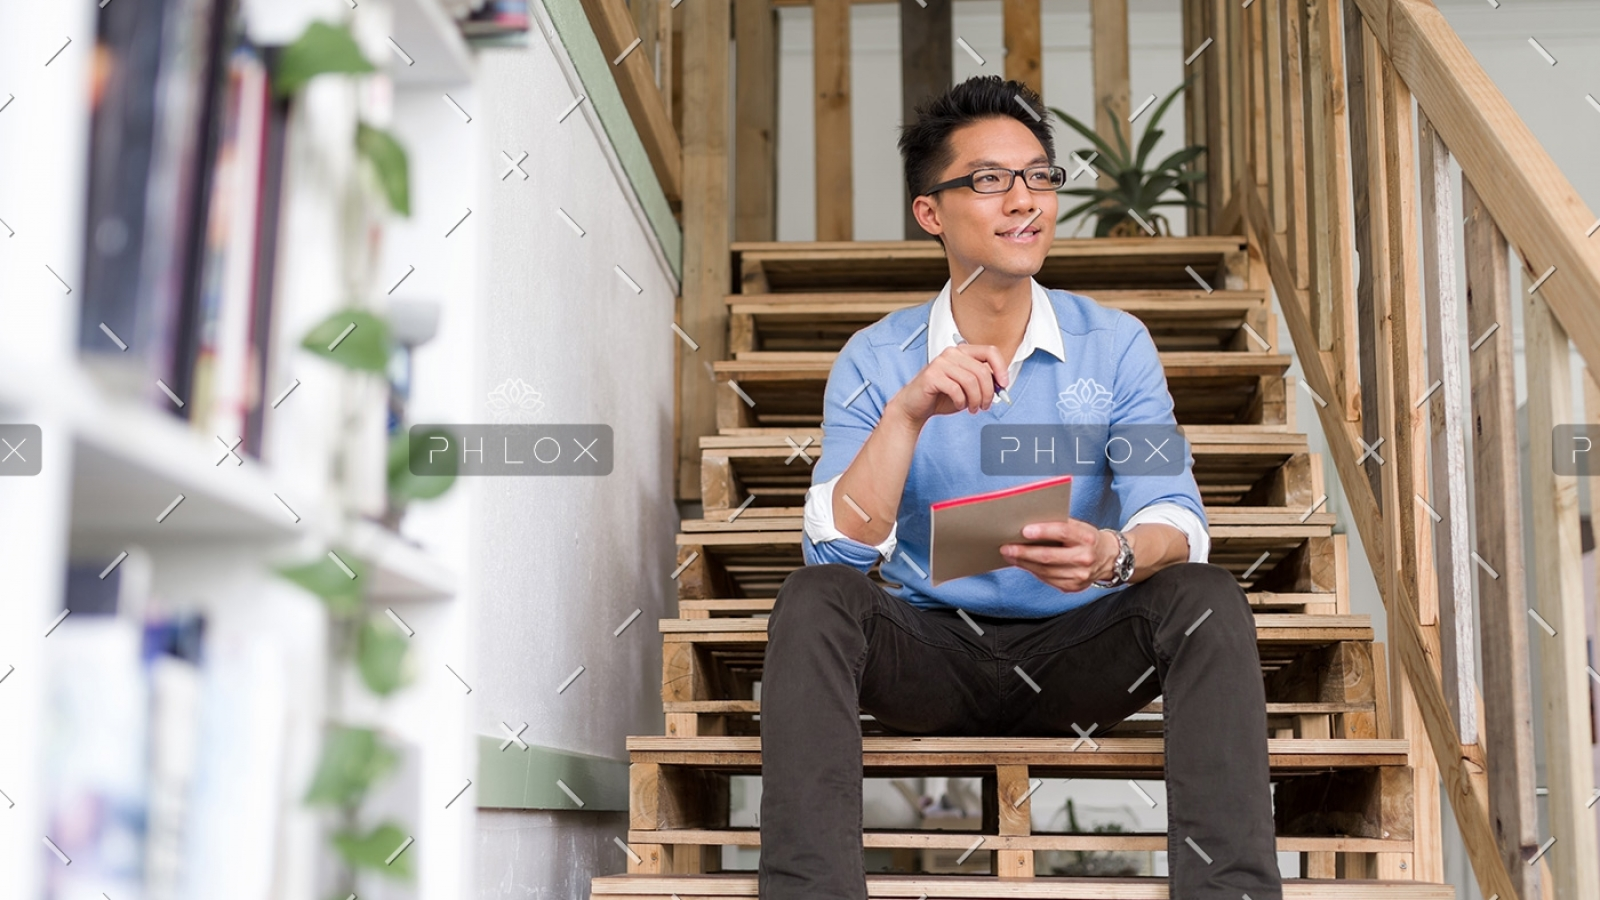 portrait-of-young-businessman-in-casual-P86QBSV-1